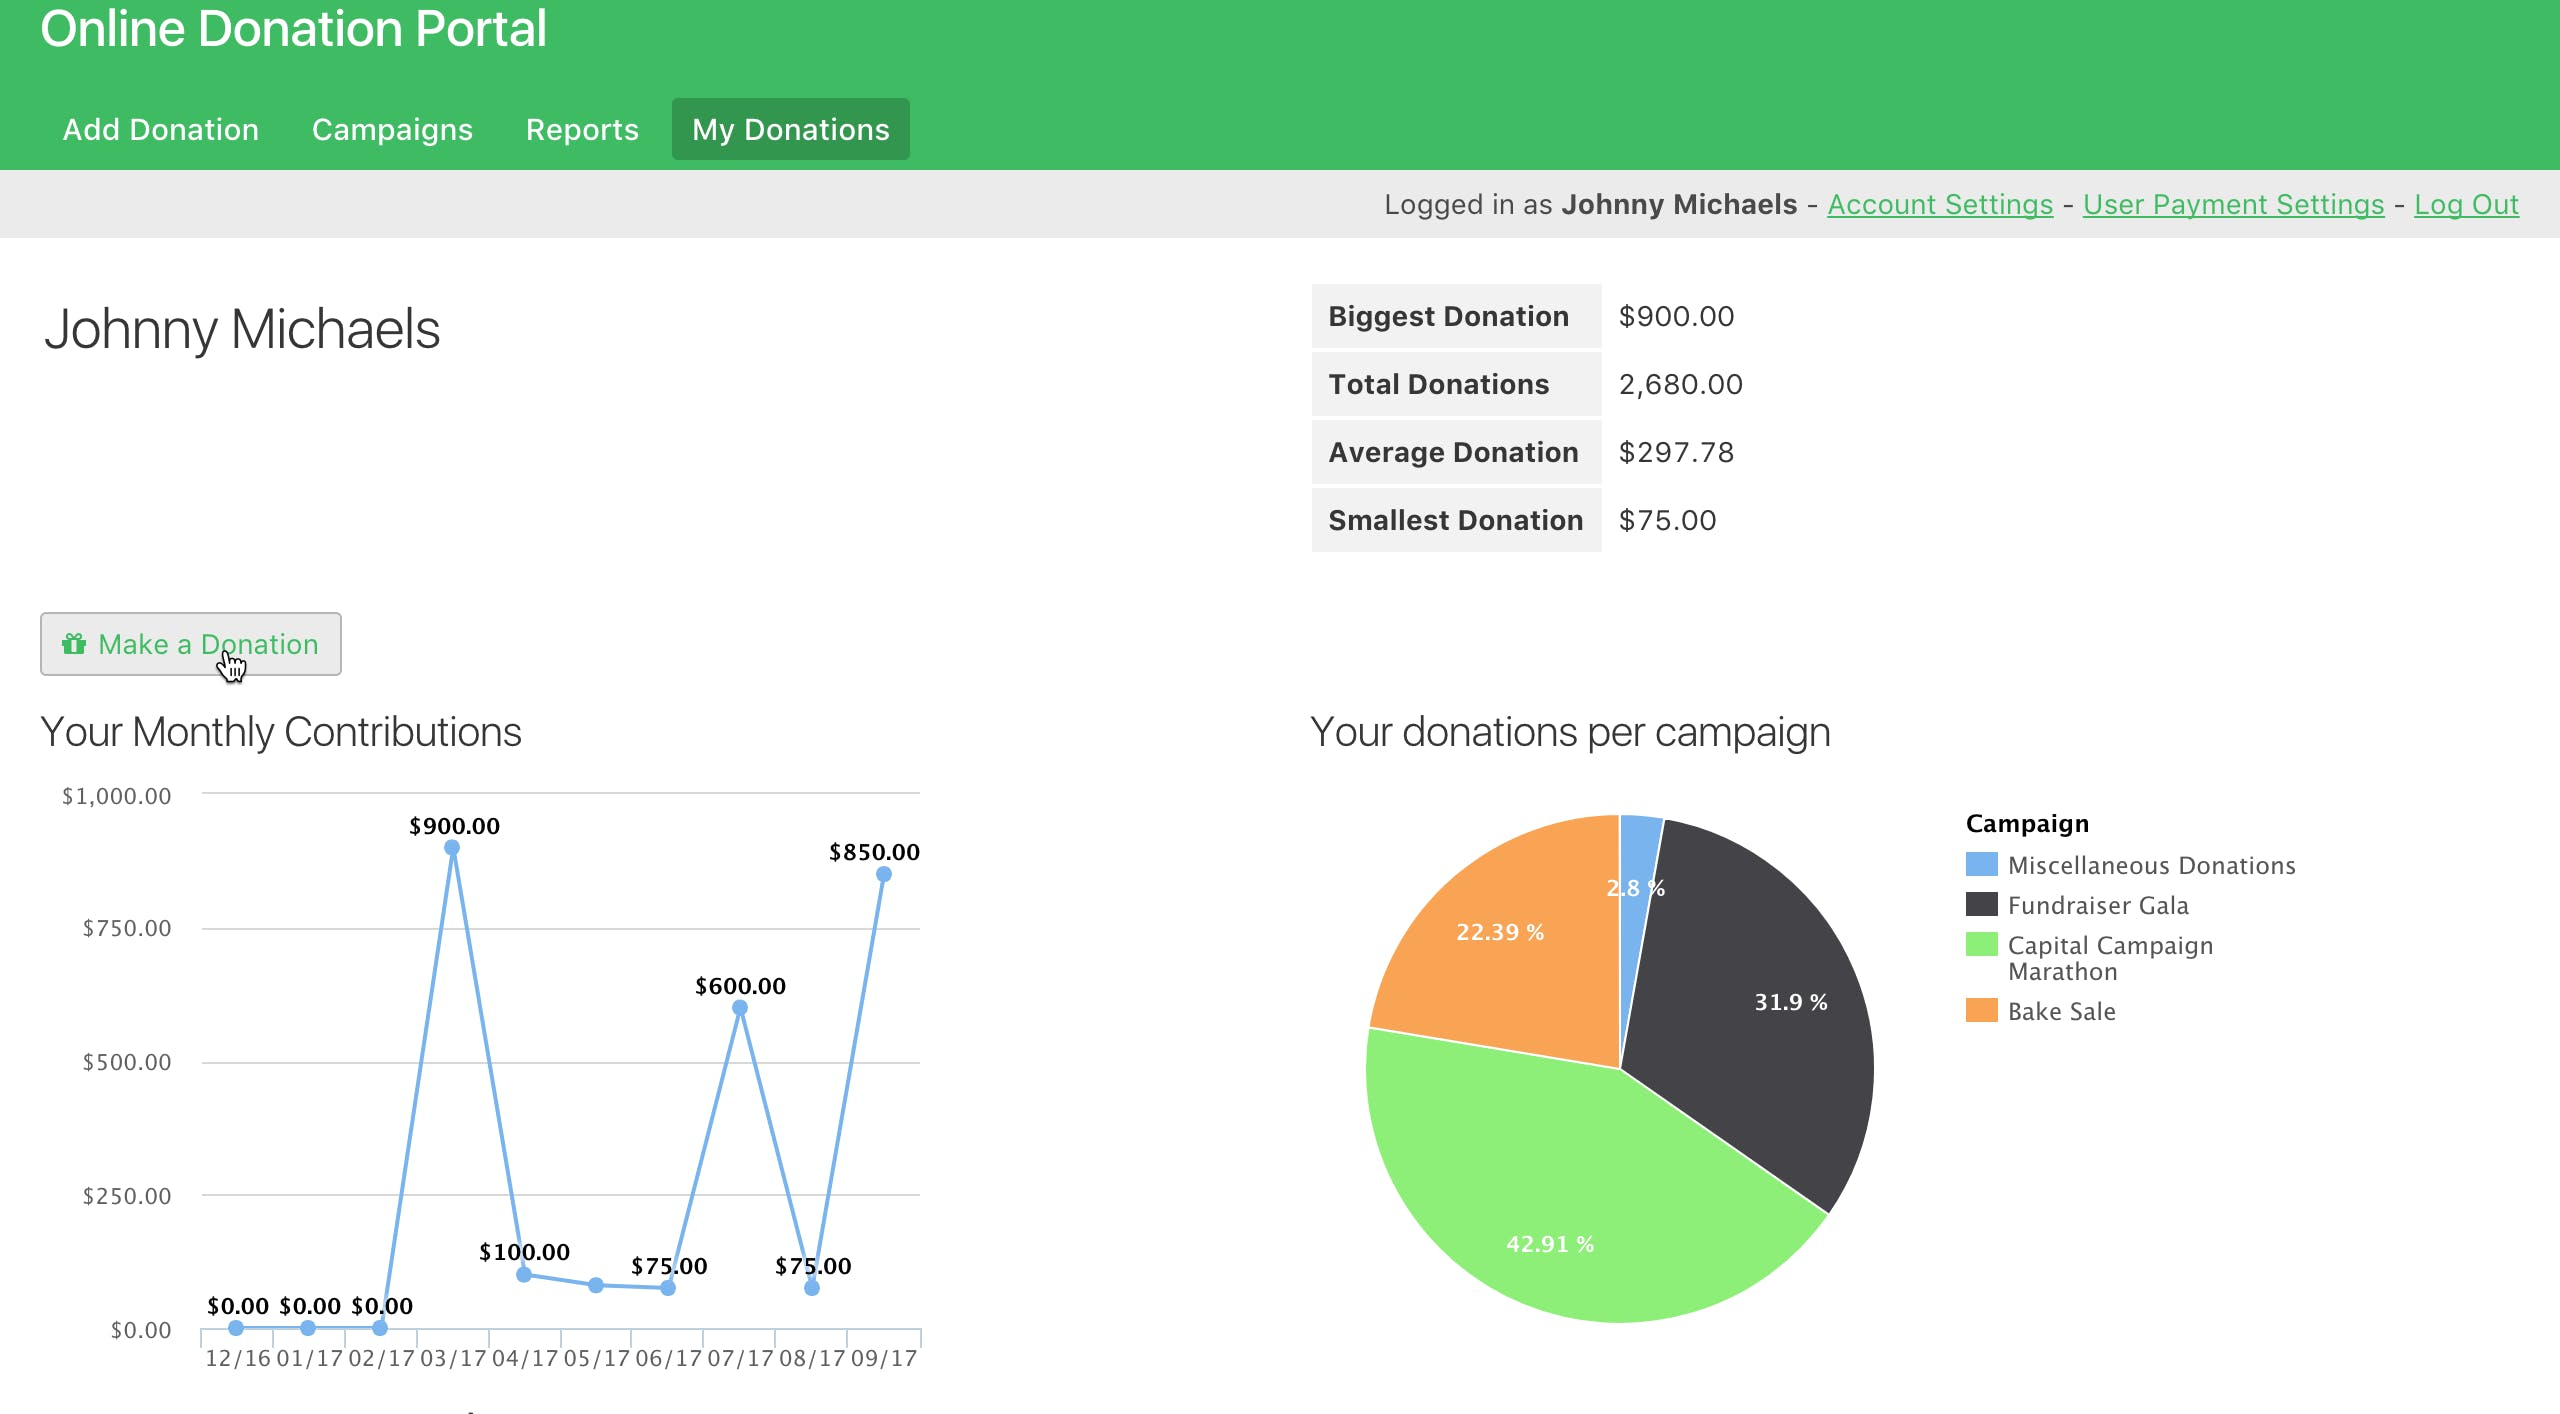 The donor's dashboard lets you make a donation at any time and keep track of previous donations made.